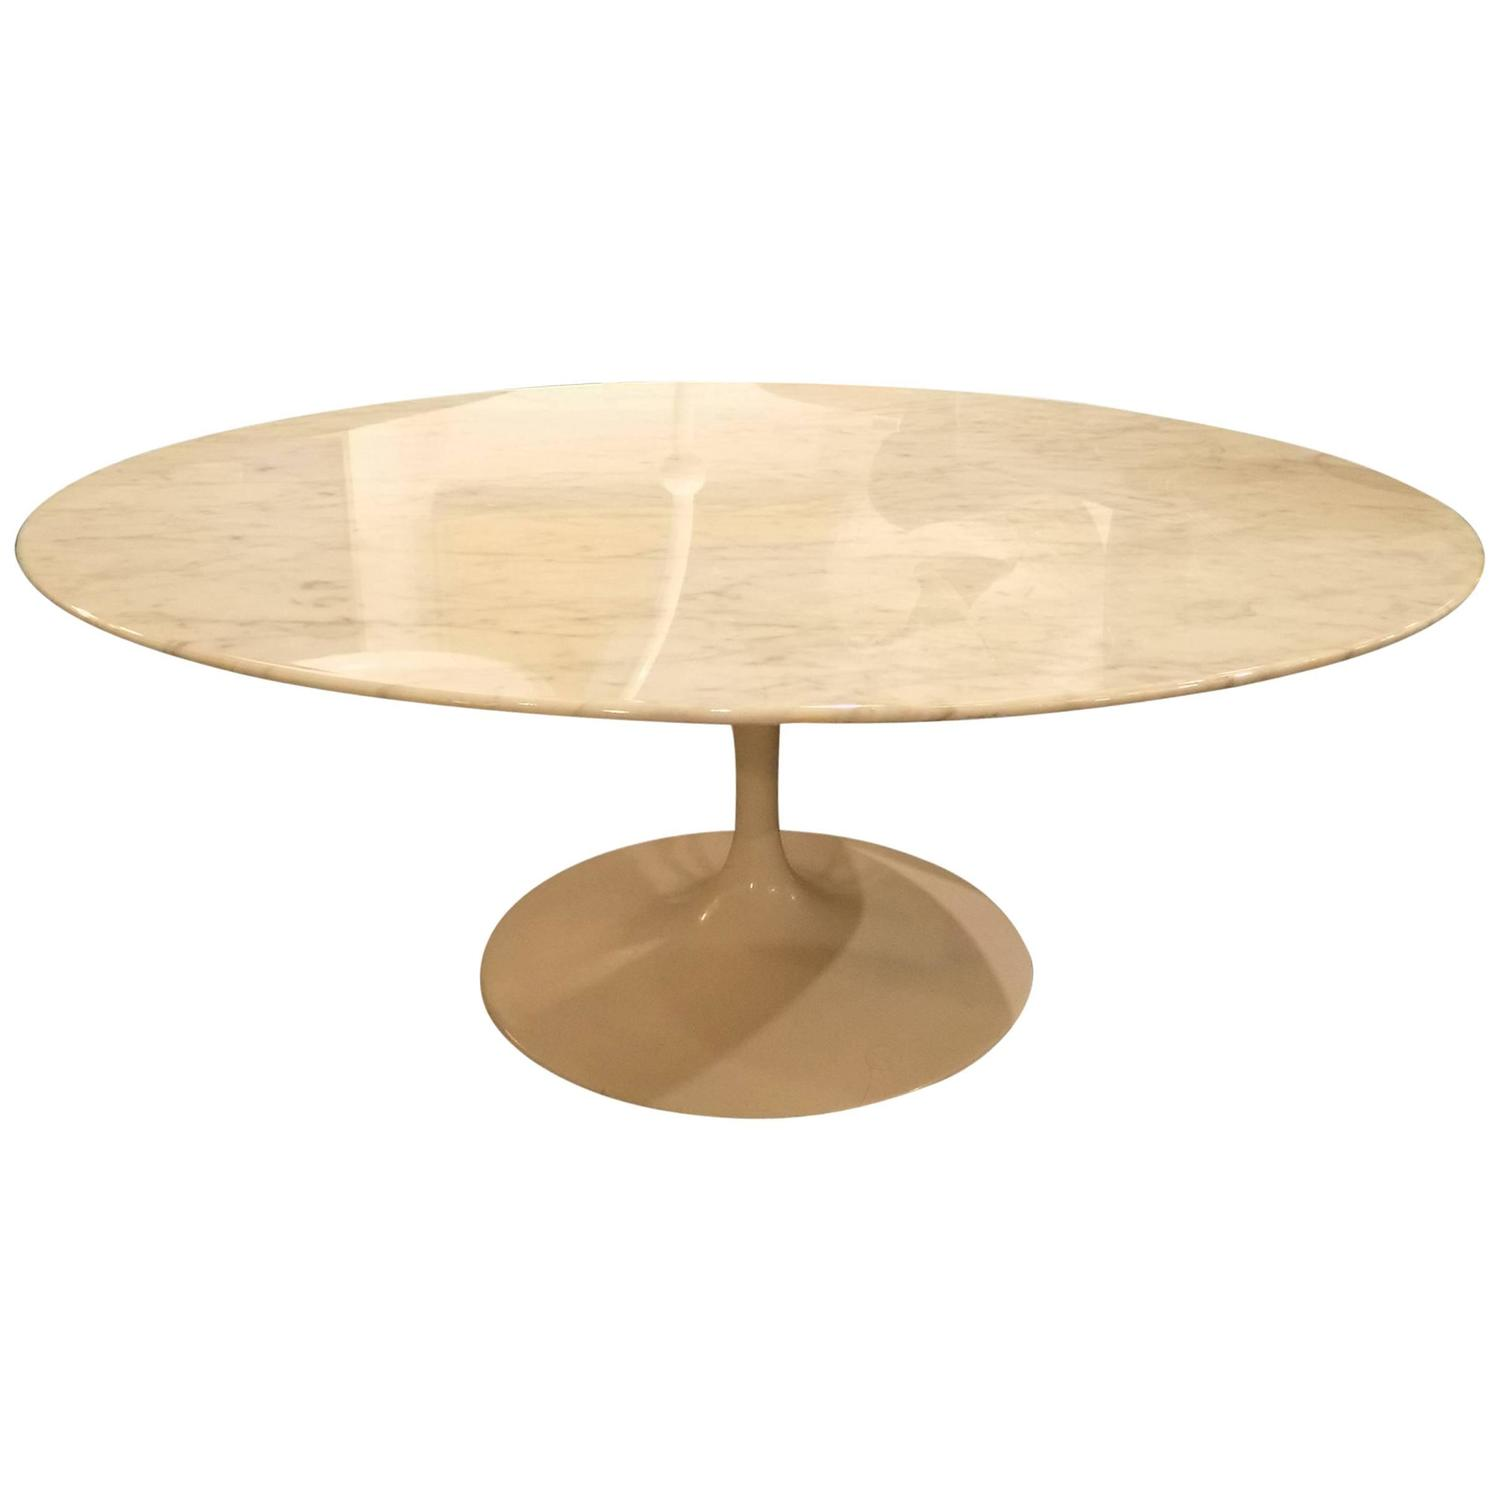 Marble Top Saarinen Coffee Table At 1stdibs